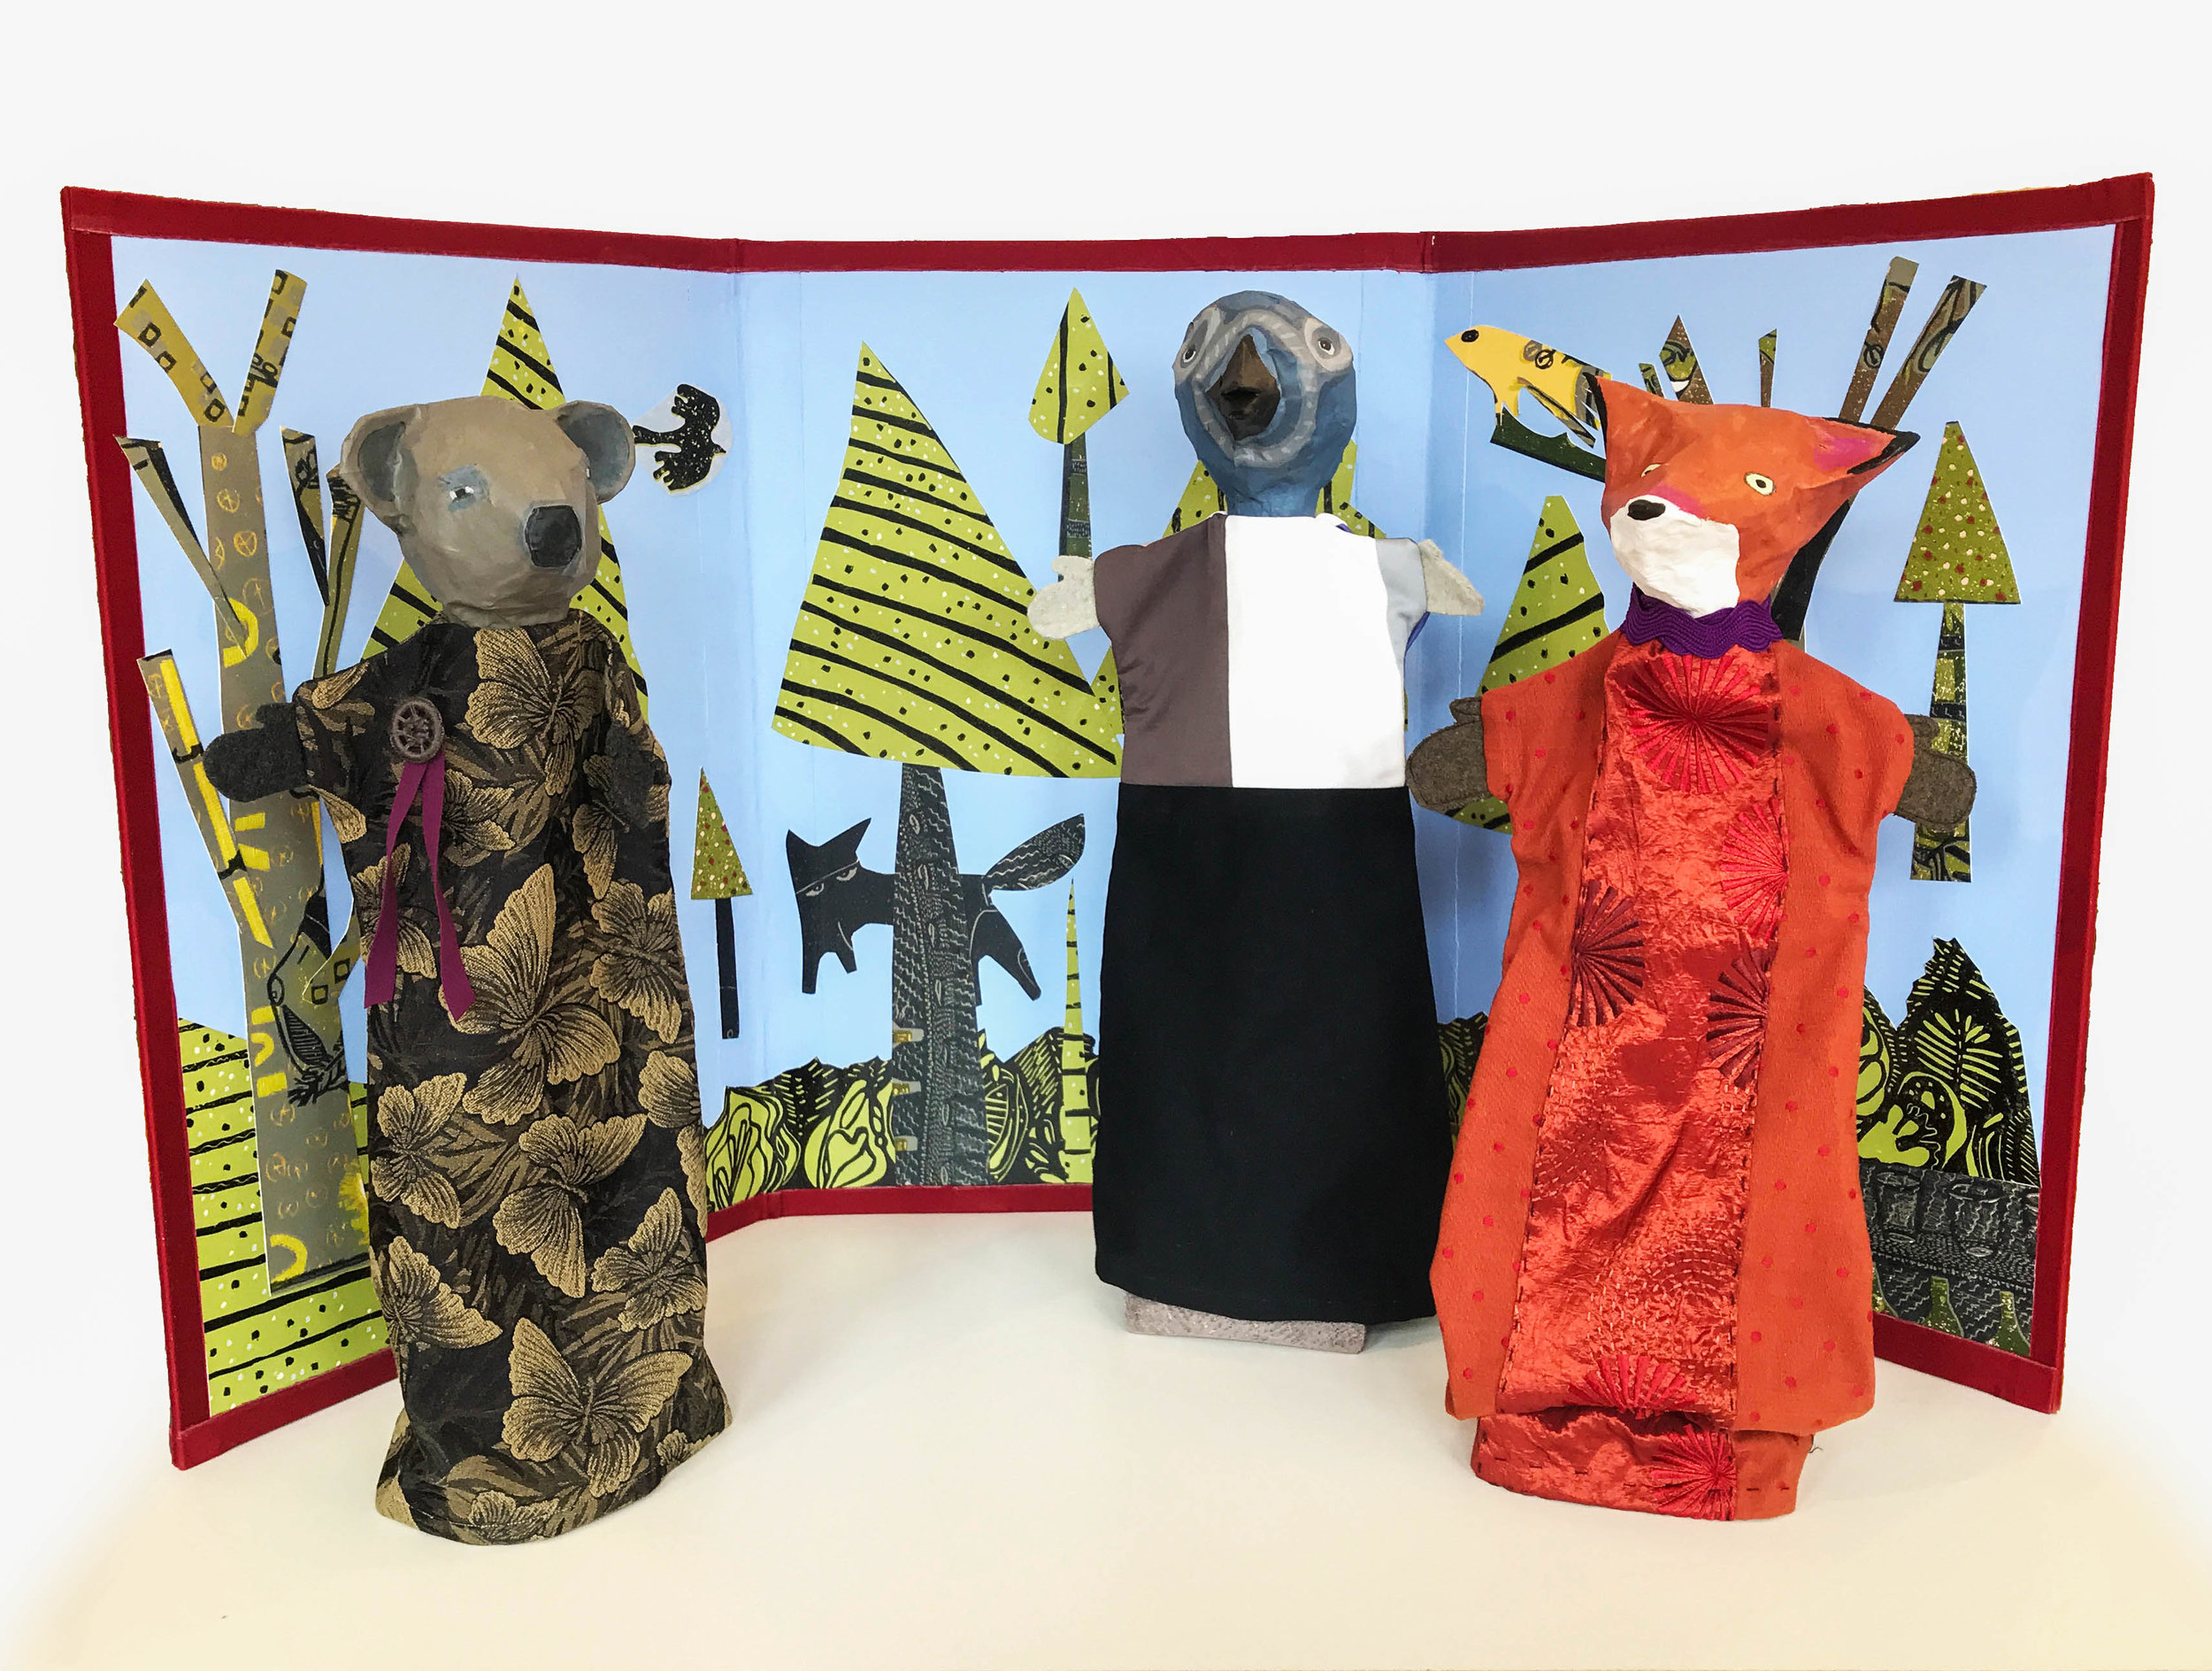 Forest Triptych , papier-mâché and fabric puppets, screen with collaged prints, ink, and acrylic on masonite, $150 for individual puppets, $450 for screen